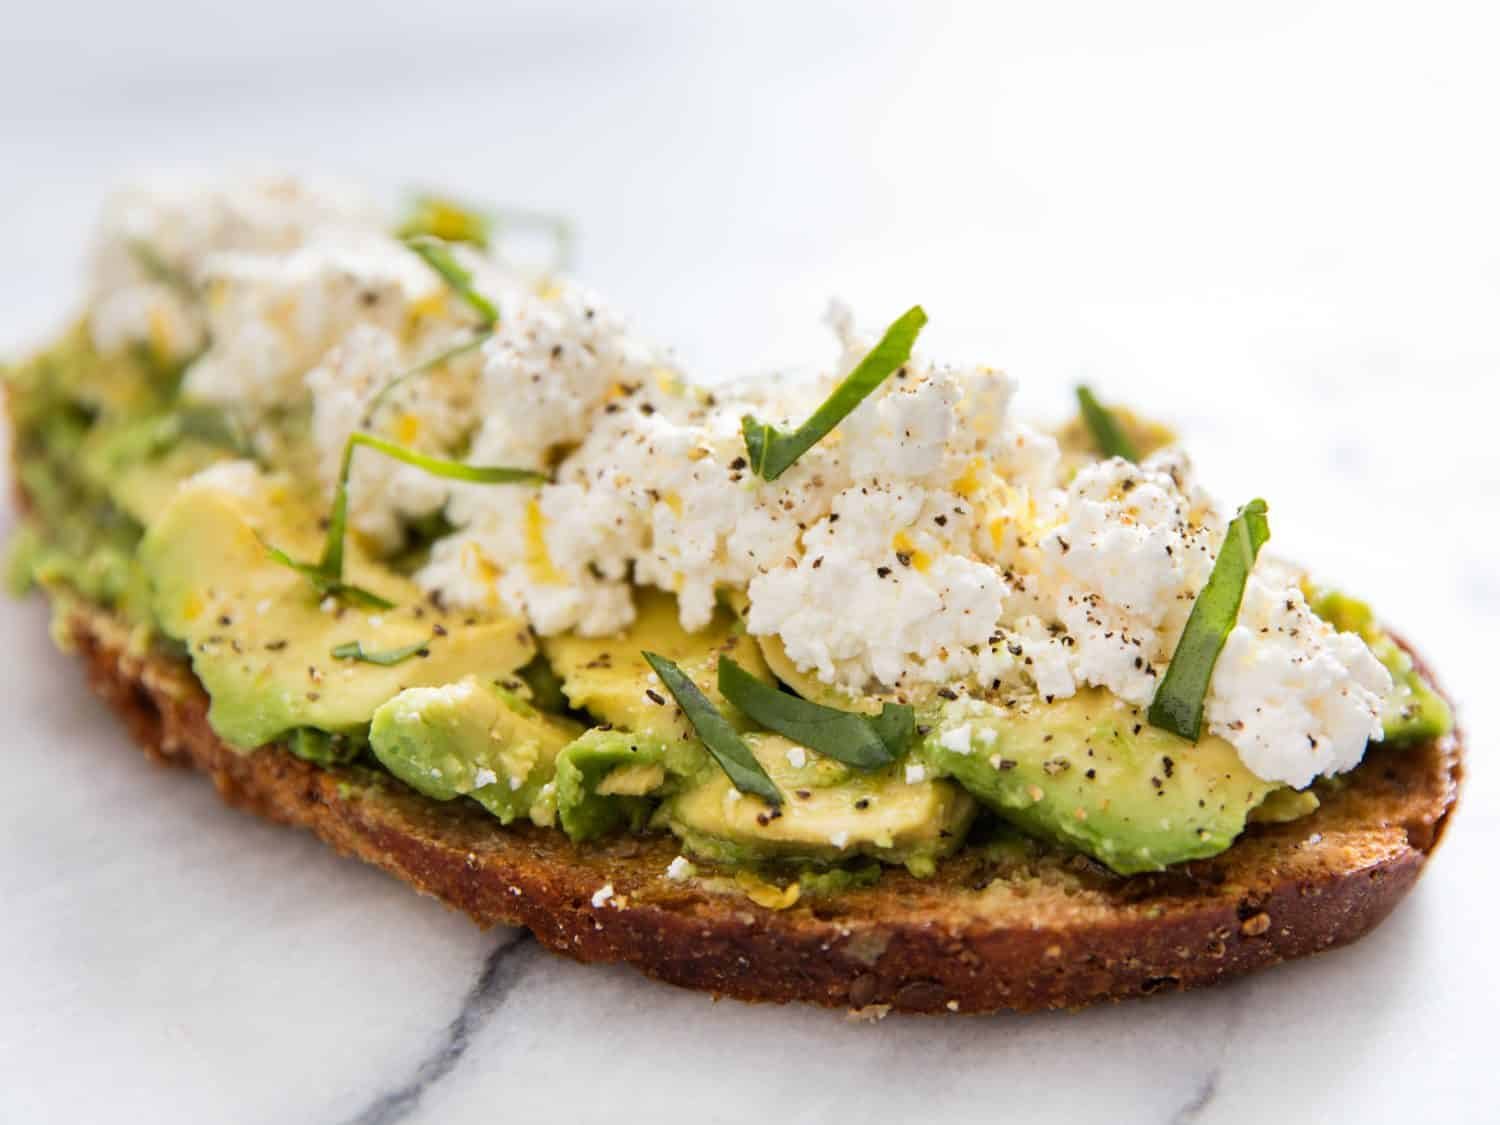 Avocado toast with ricotta cheese and olive oil